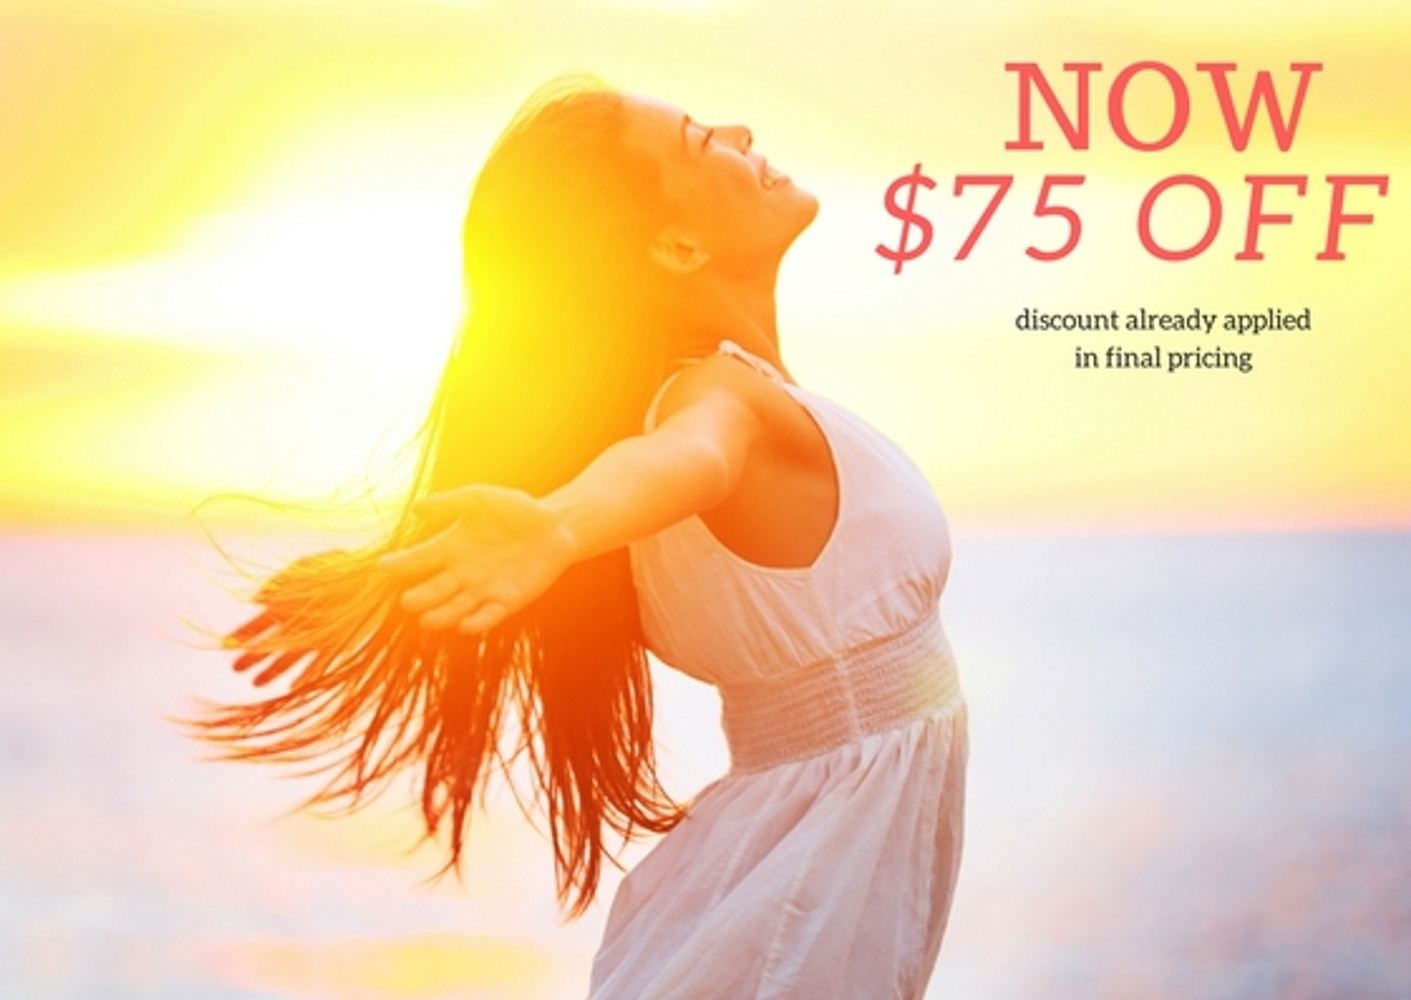 Spring Renewal Retreat - now $75 OFF!